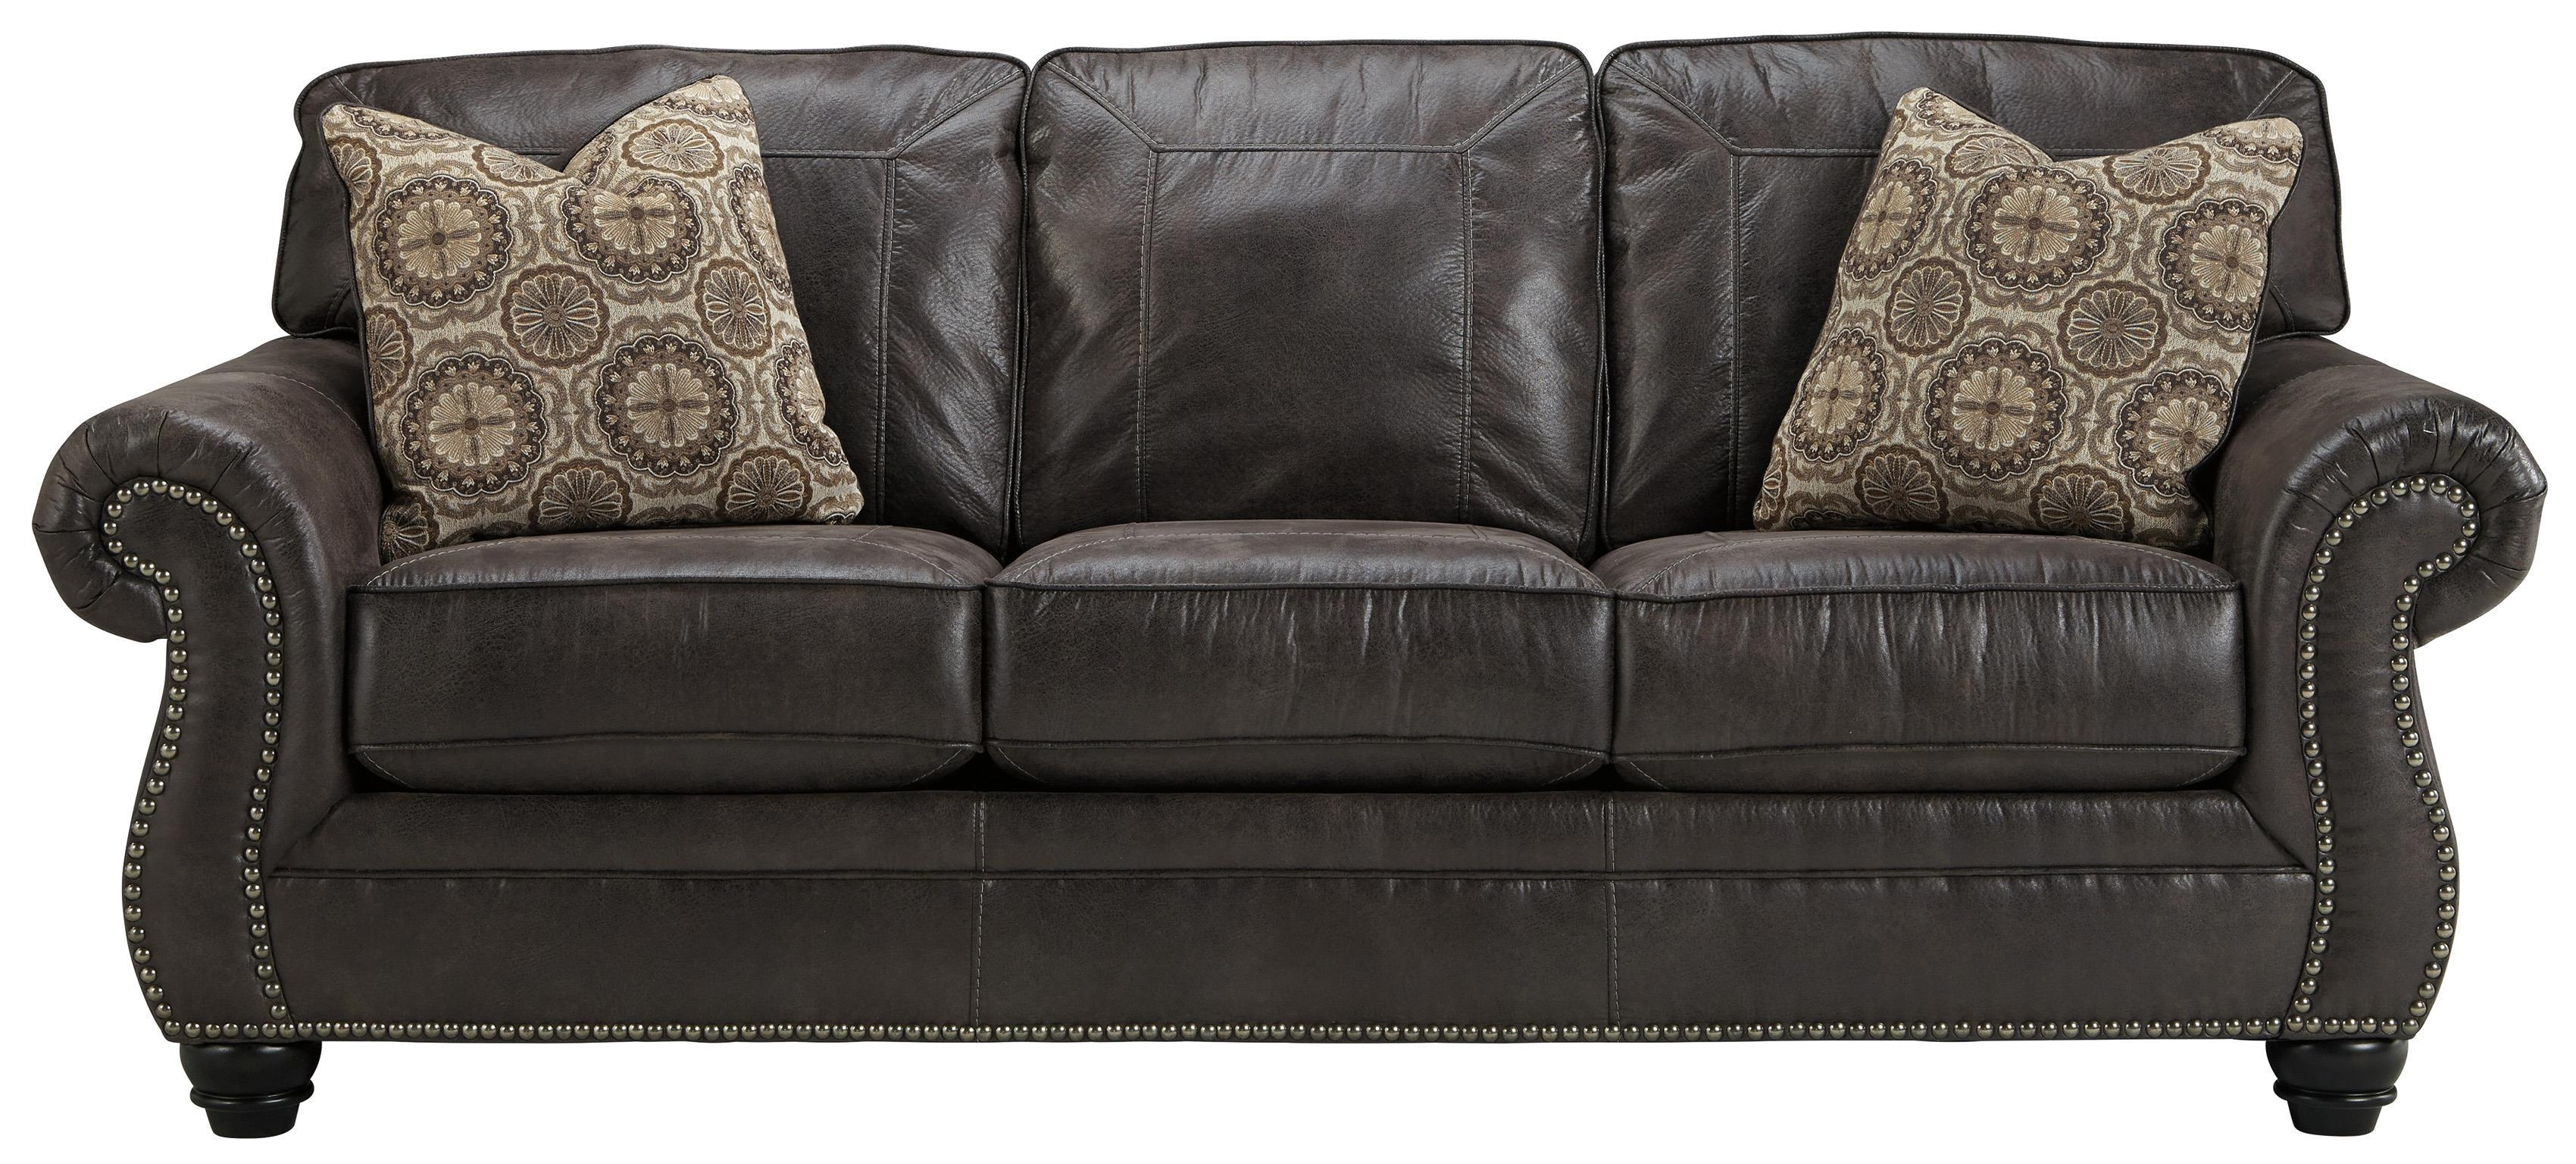 loveseat sleeper sofa leather dfs long beach large chaise 20 inspirations faux sofas ideas